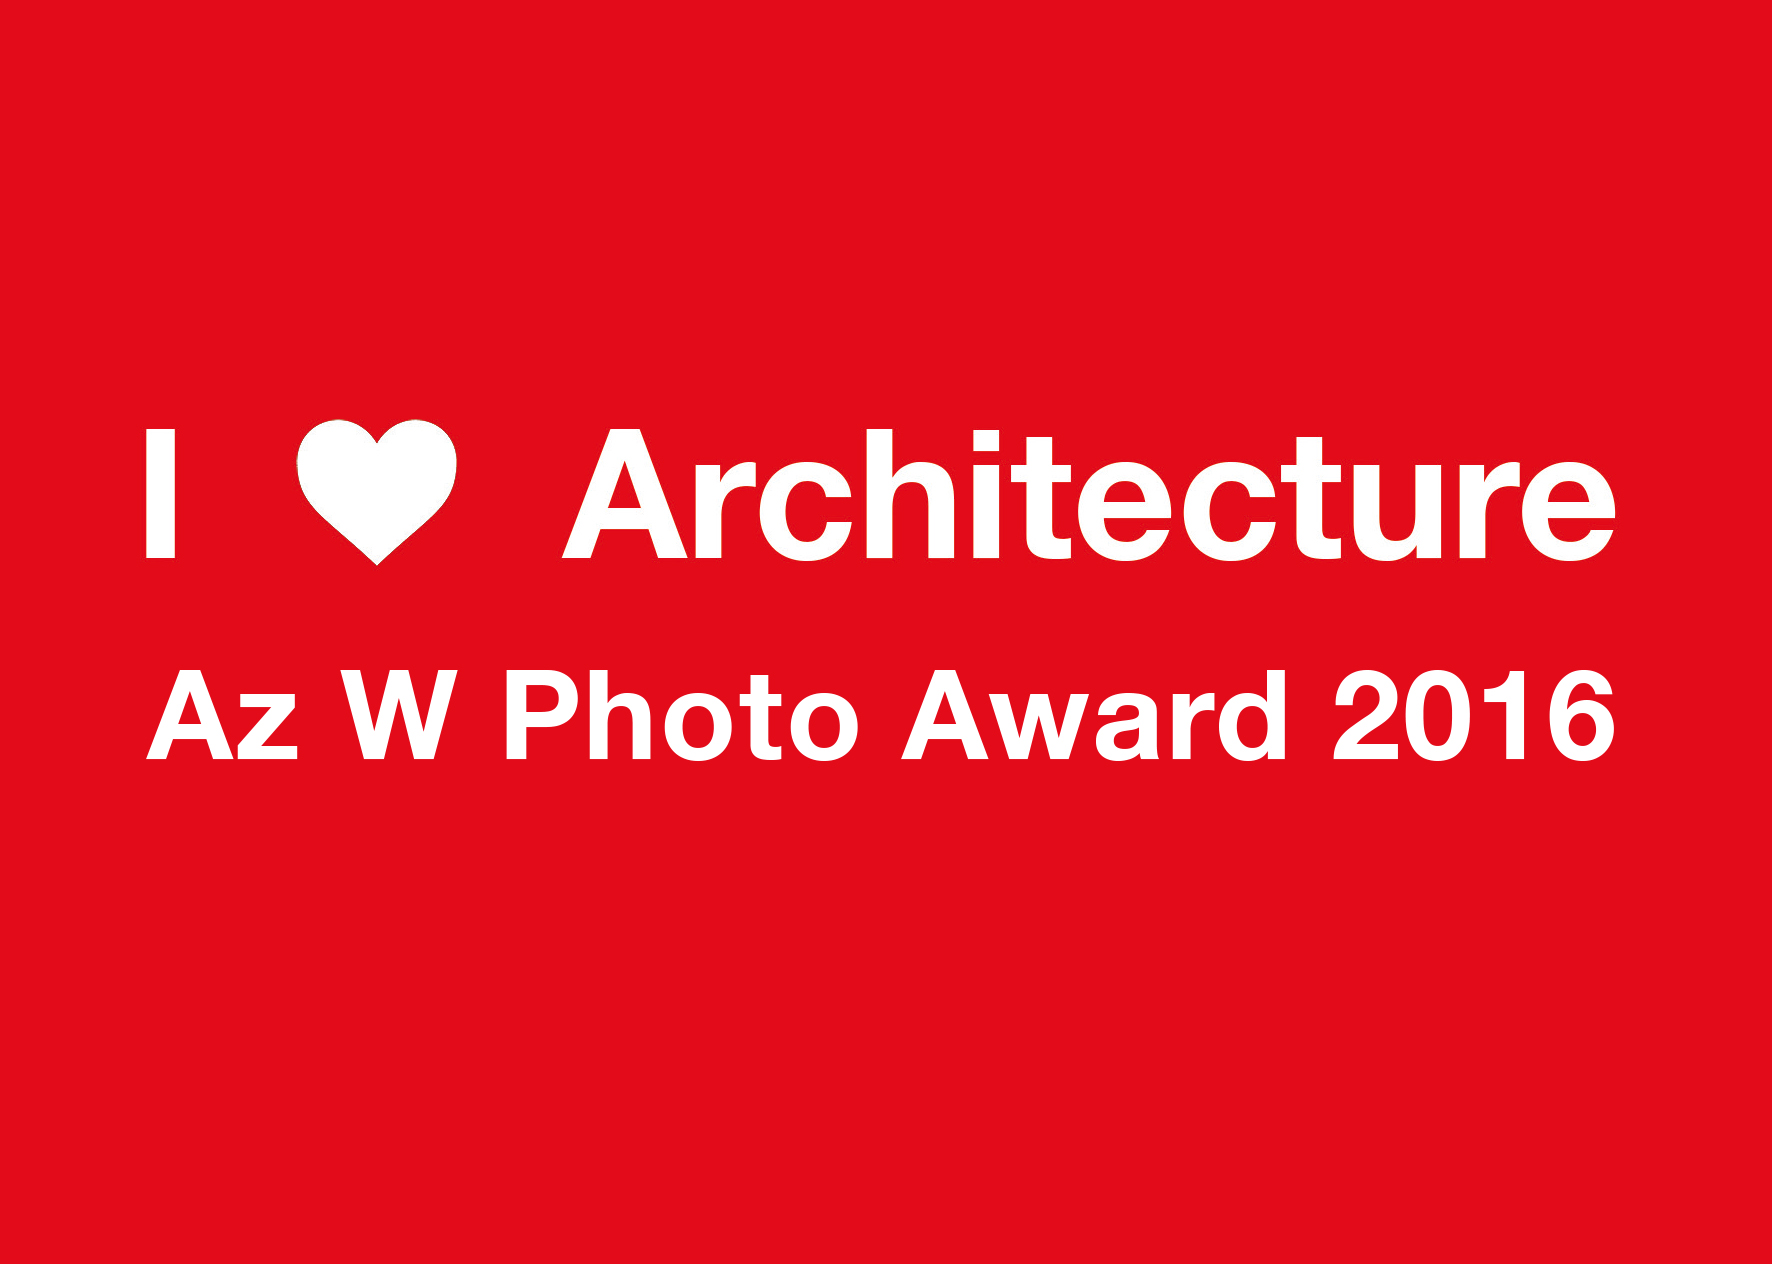 Az W Photo Award: I ♥ ARCHITECTURE